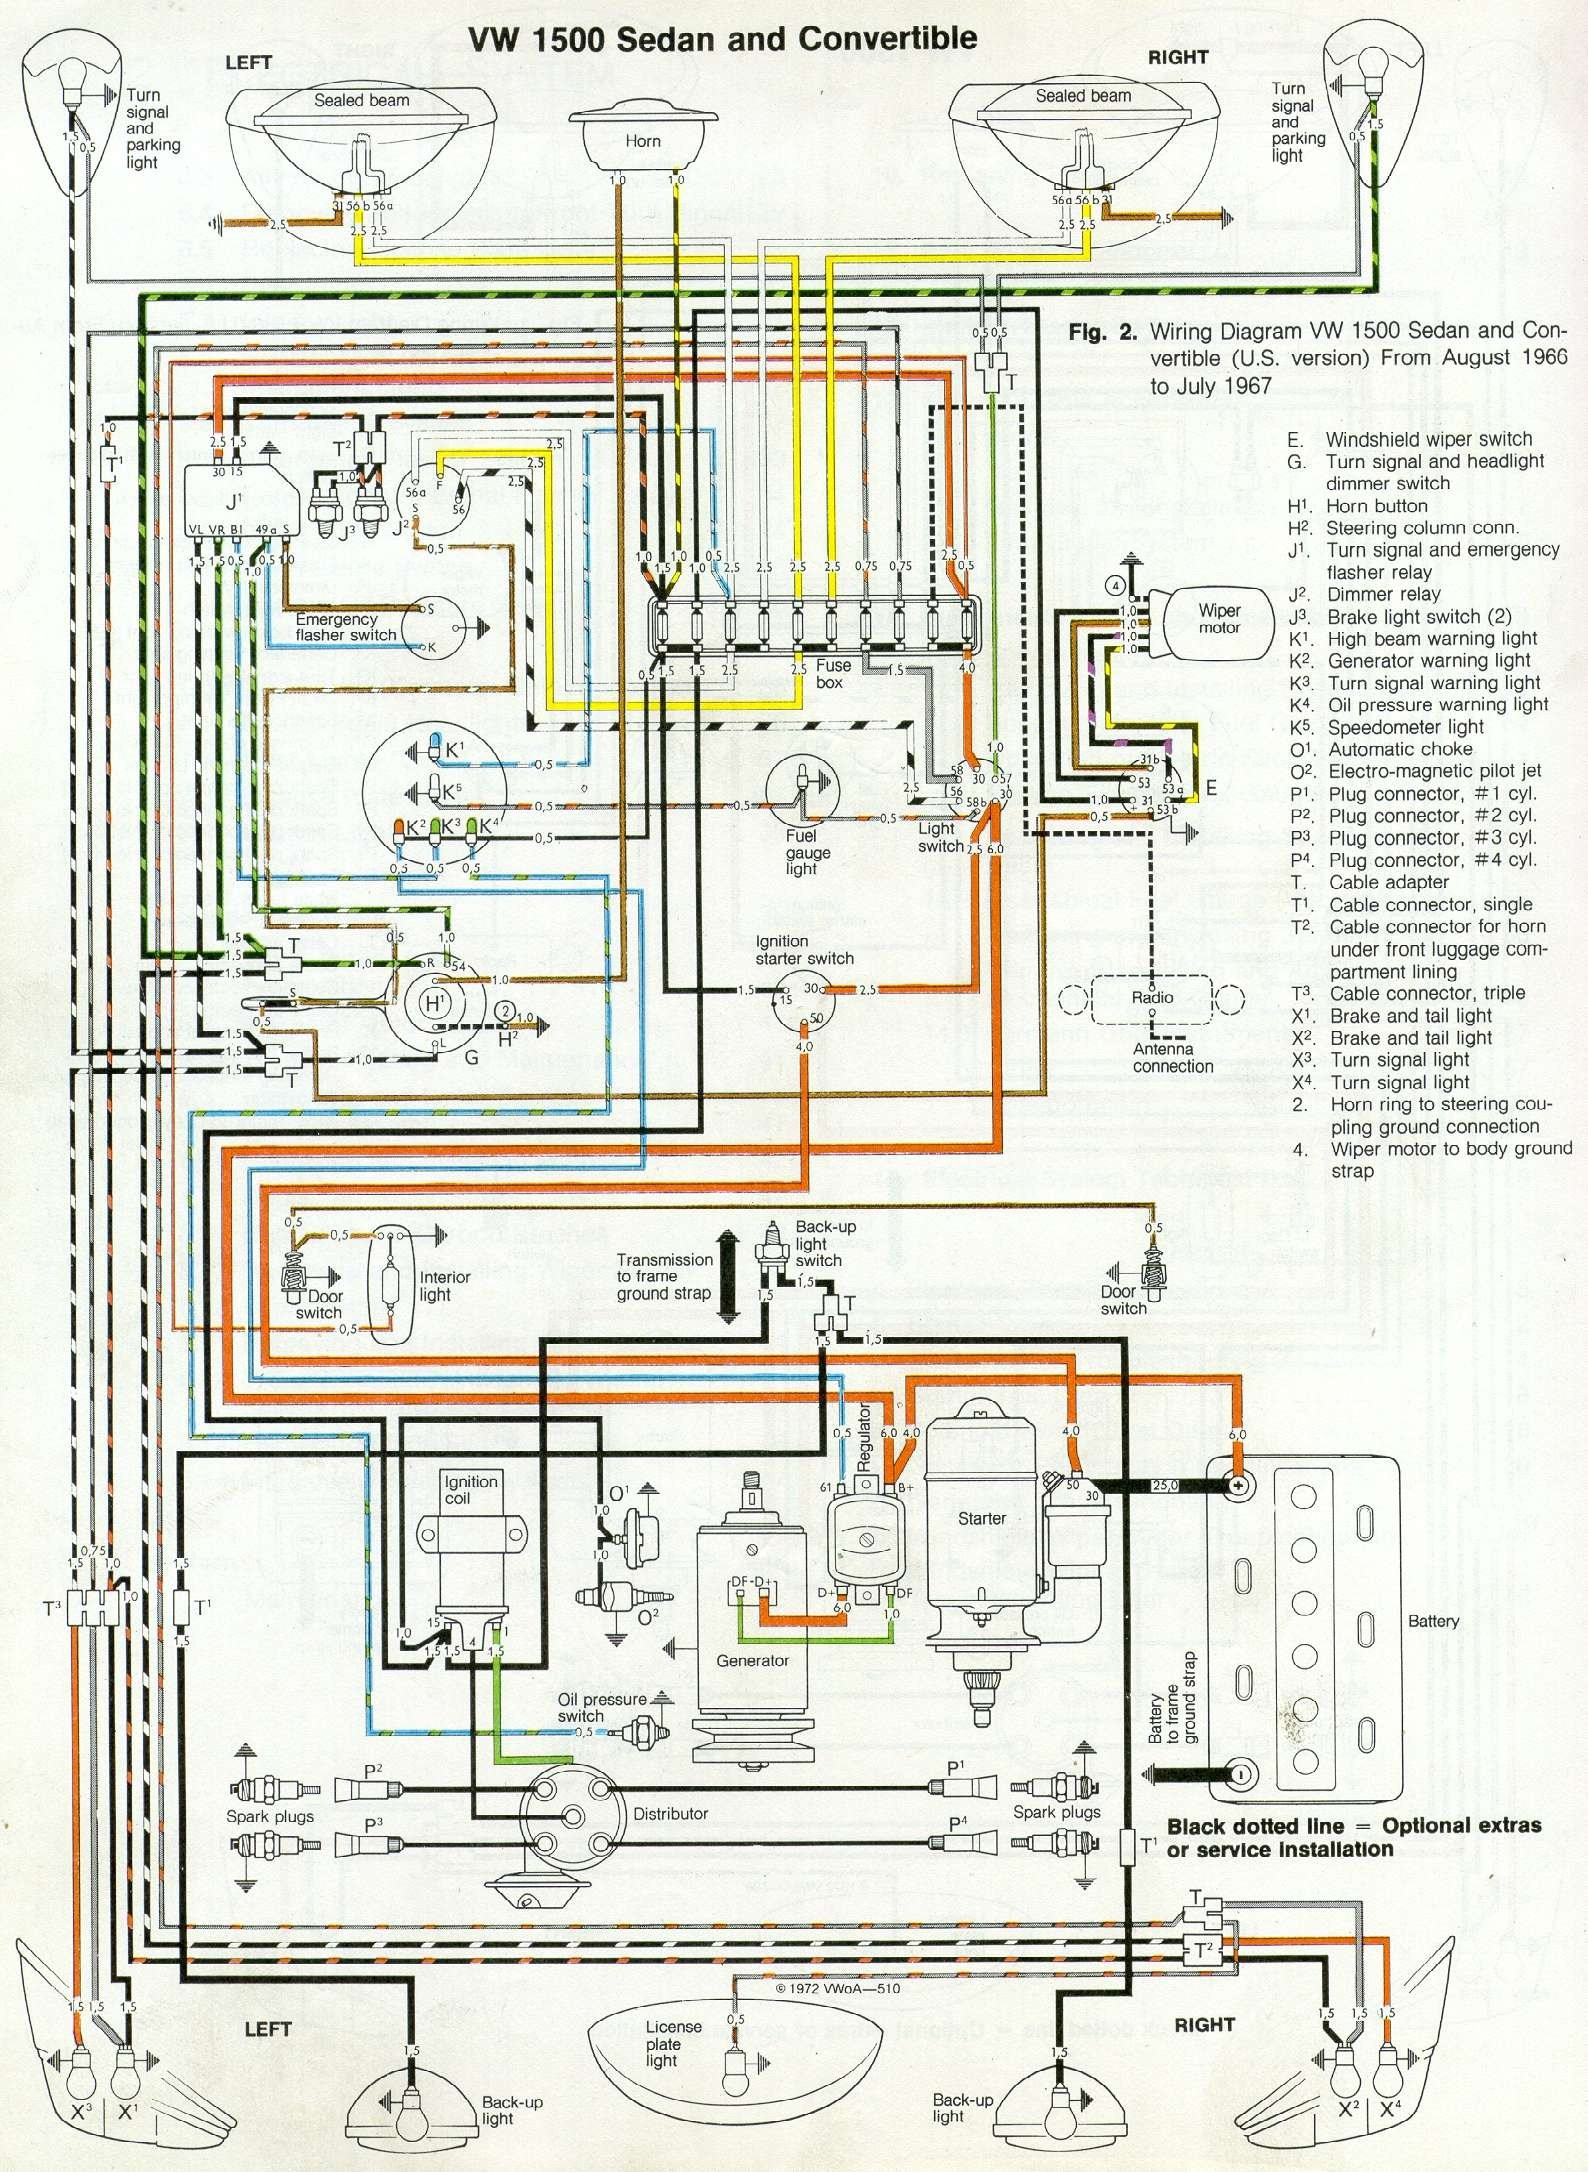 VW Beetle Wiring Digram 67 beetle wiring diagram u s version 1967 vw beetle volkswagen wiring diagrams at readyjetset.co